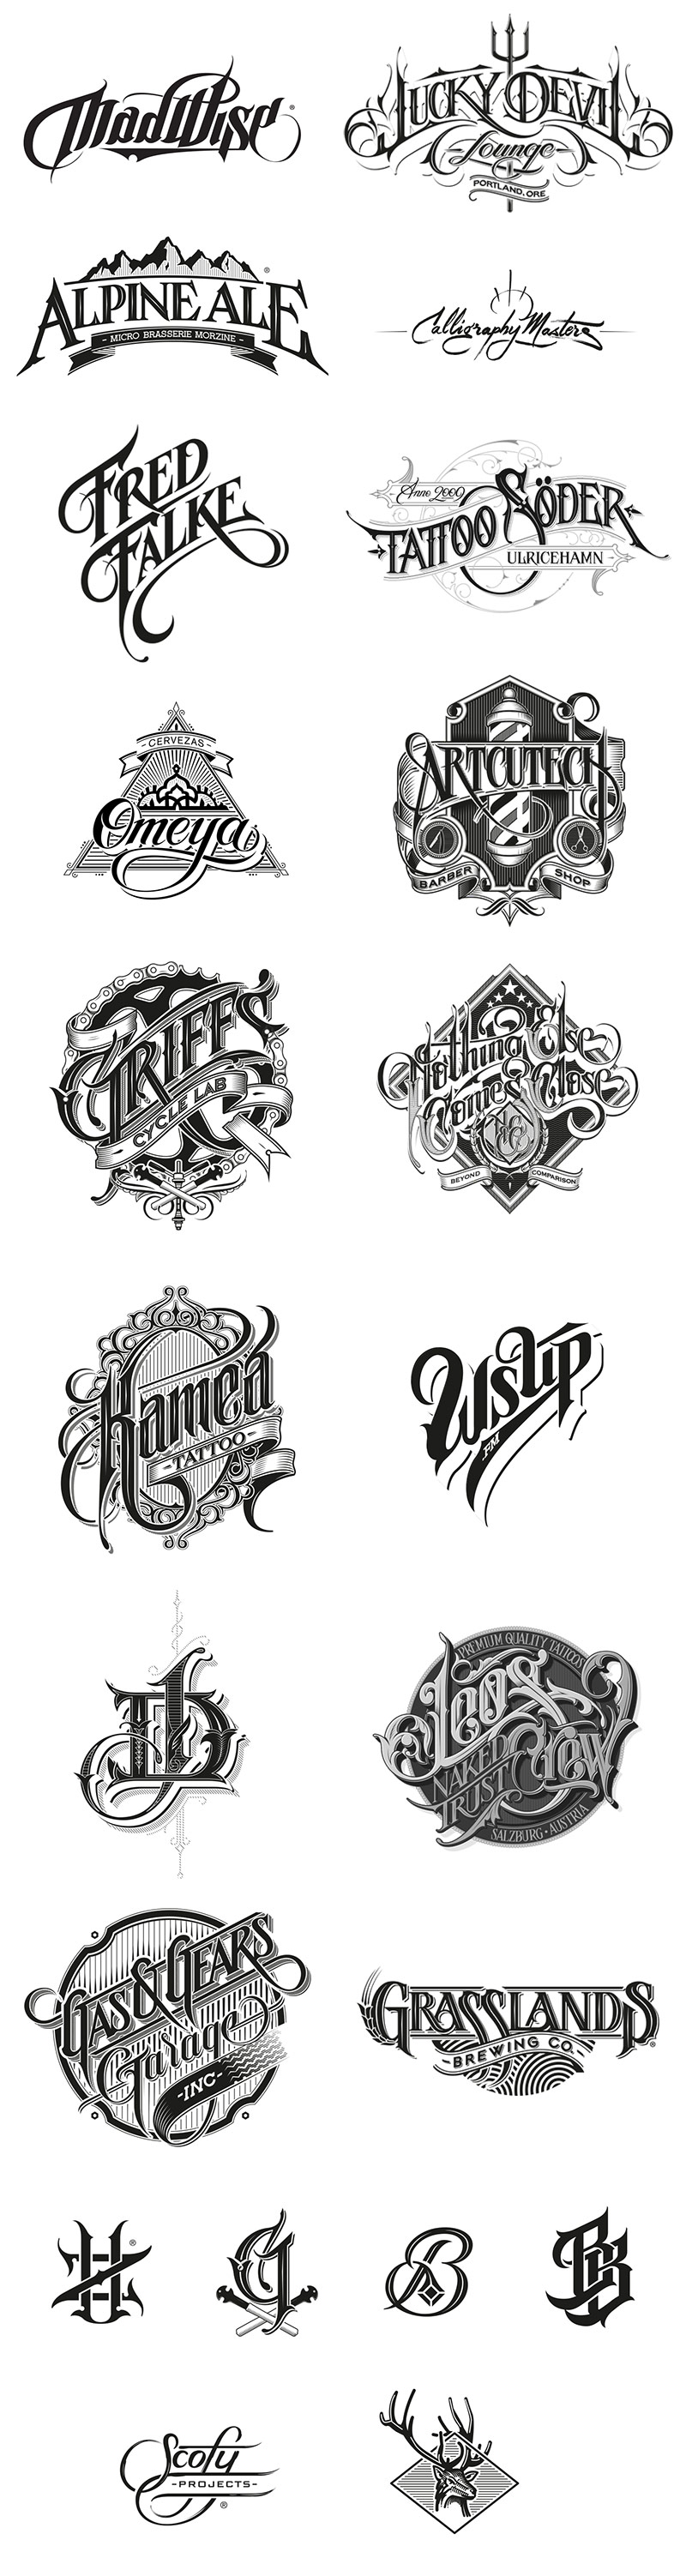 Logotypes, marks, and custom letterings by Martin Schmetzer, a Stockholm based artist and graphic designer with main focus on hand-drawn typography.